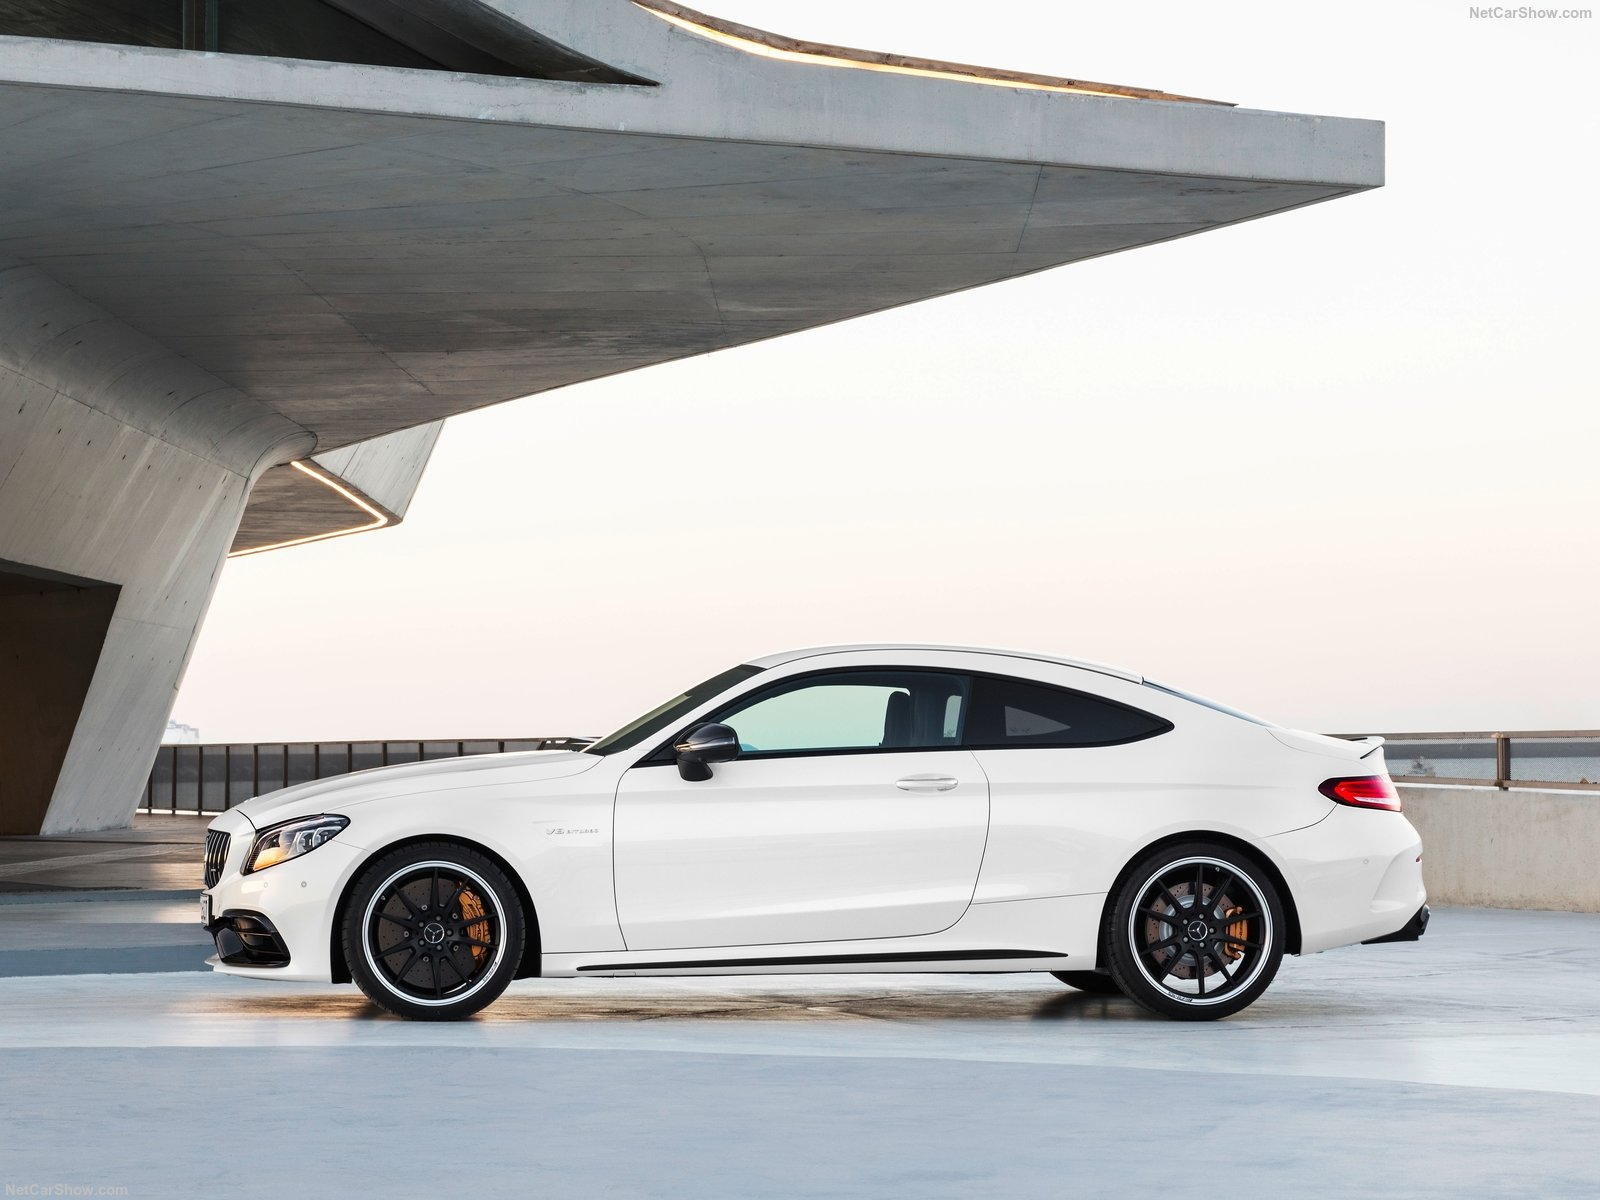 Mercedes-Benz C63 S AMG Coupe photo 187378